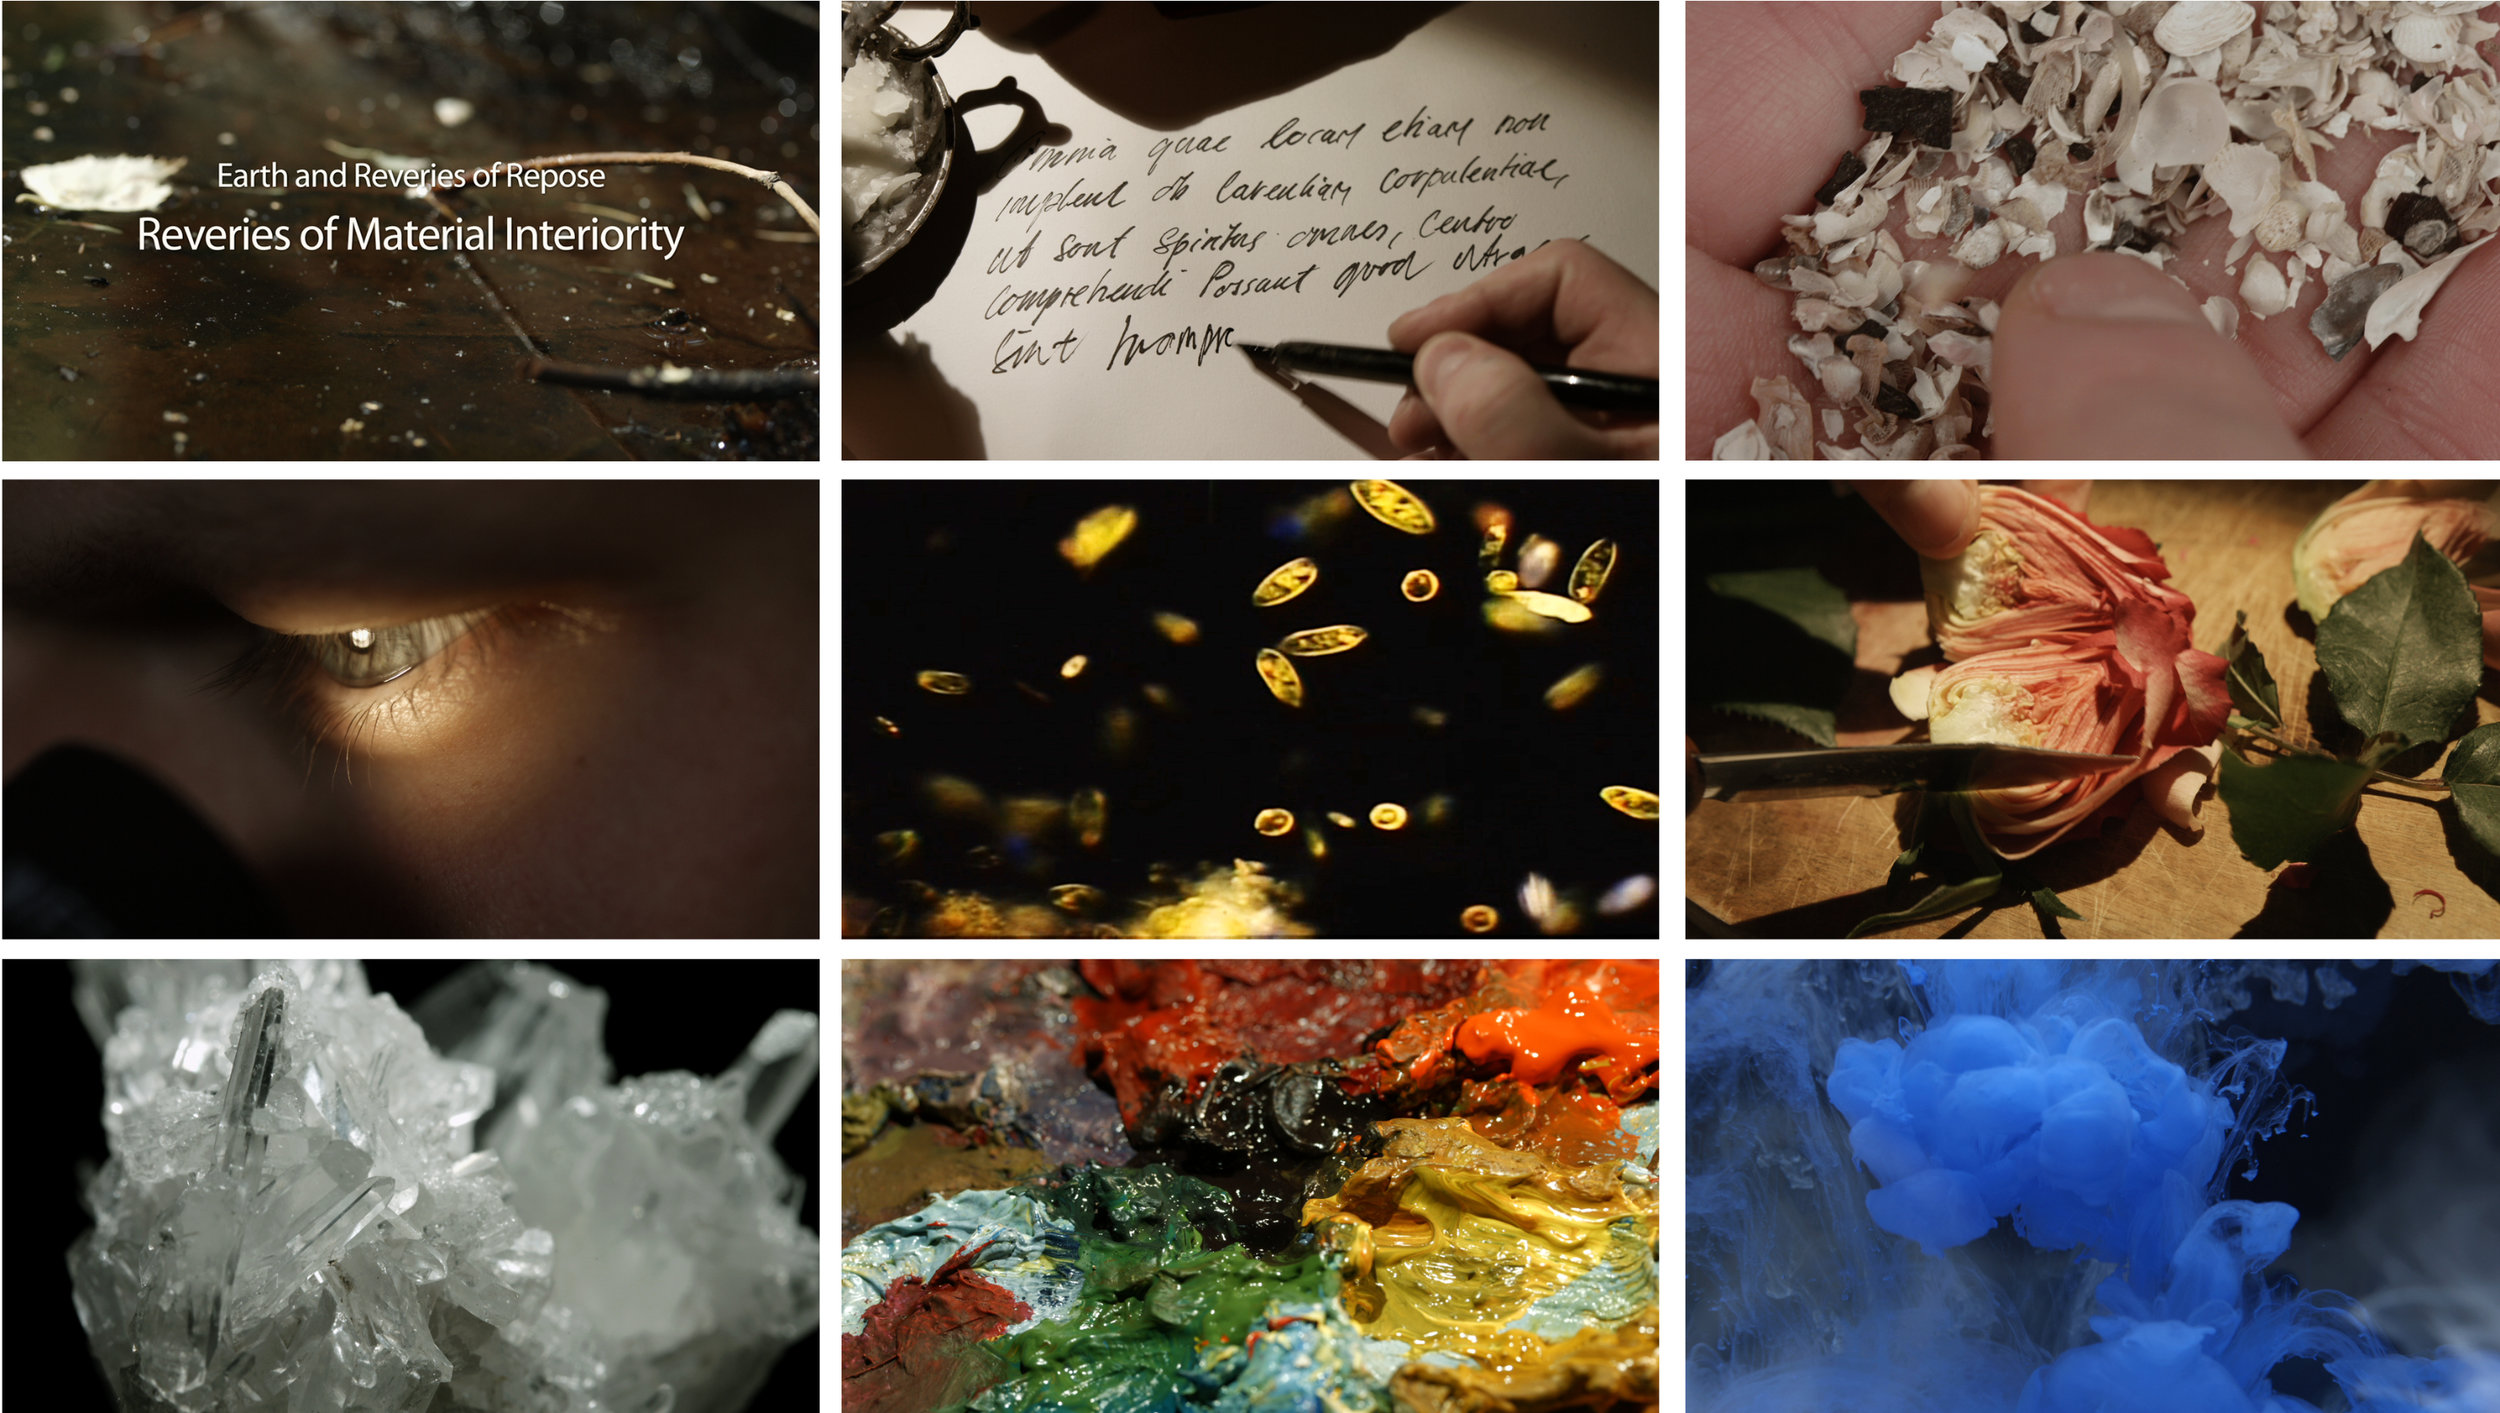 """Still images from """"Earth and Reveries of Repose—Reveries of Material Interiority"""", 2015, HD video, 23:52 min."""